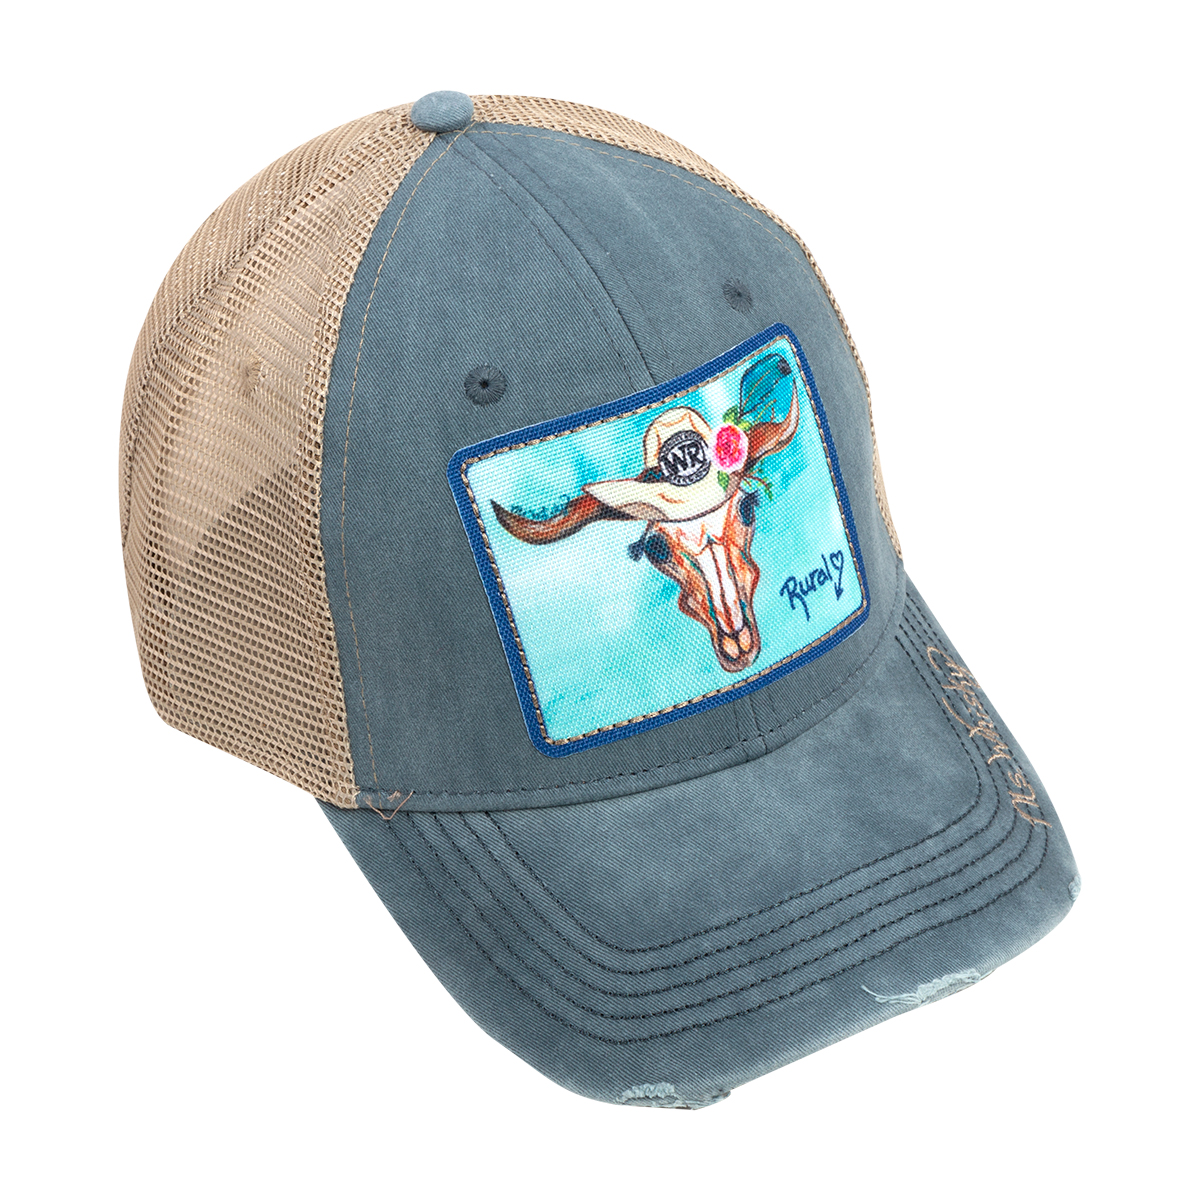 Ms Whisky Ladies Adjustable Hat